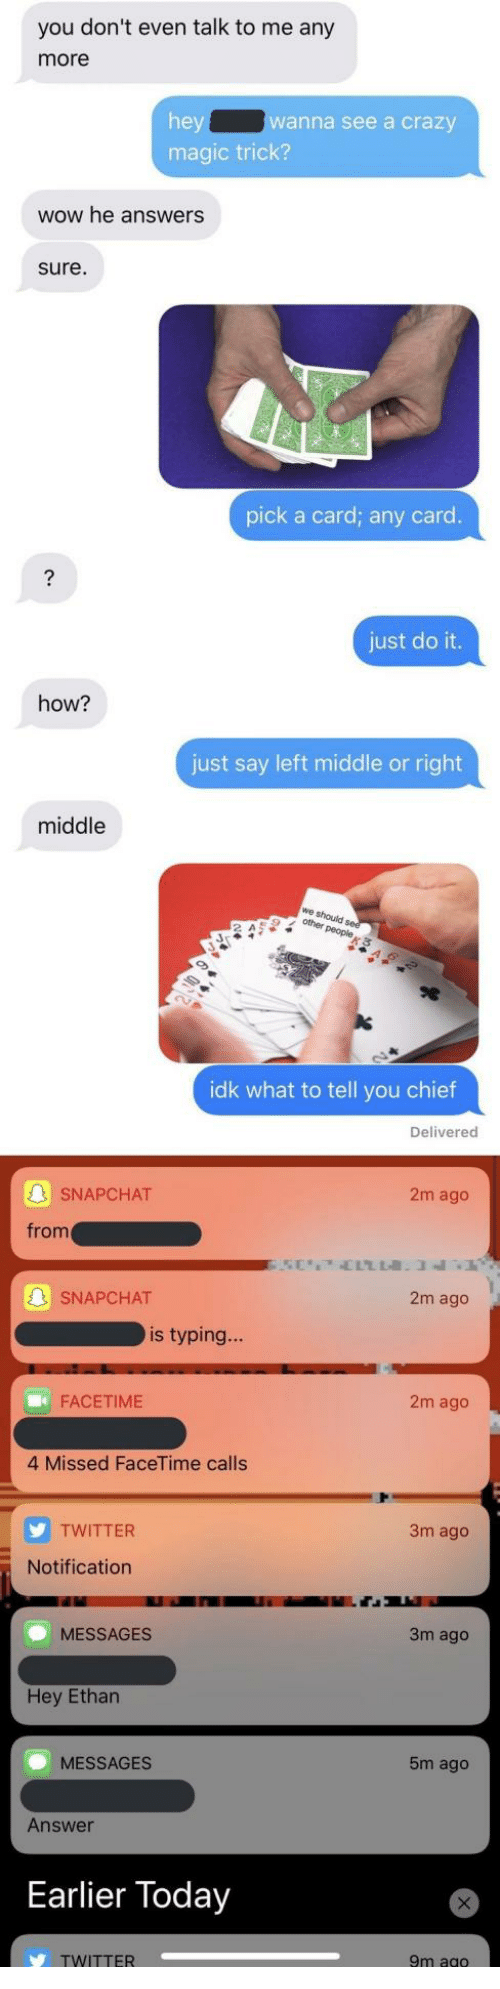 Magic Trick: you don't even talk to me any  more  anna see a crazy  magic trick?  wow he answers  sure  pick a card; any card  just do it.  how?  just say left middle or right  middle  we  2 A  idk what to tell you chief  Delivered  SNAPCHAT  2m ago  from  SNAPCHAT  2m ago  is typing...  FACETIME  2m ago  4 Missed FaceTime calls  TWITTER  3m ago  Notification  MESSAGES  3m ago  Hey Ethar  MESSAGES  m ago  Answer  Earlier Today  TWITTER  9m ag